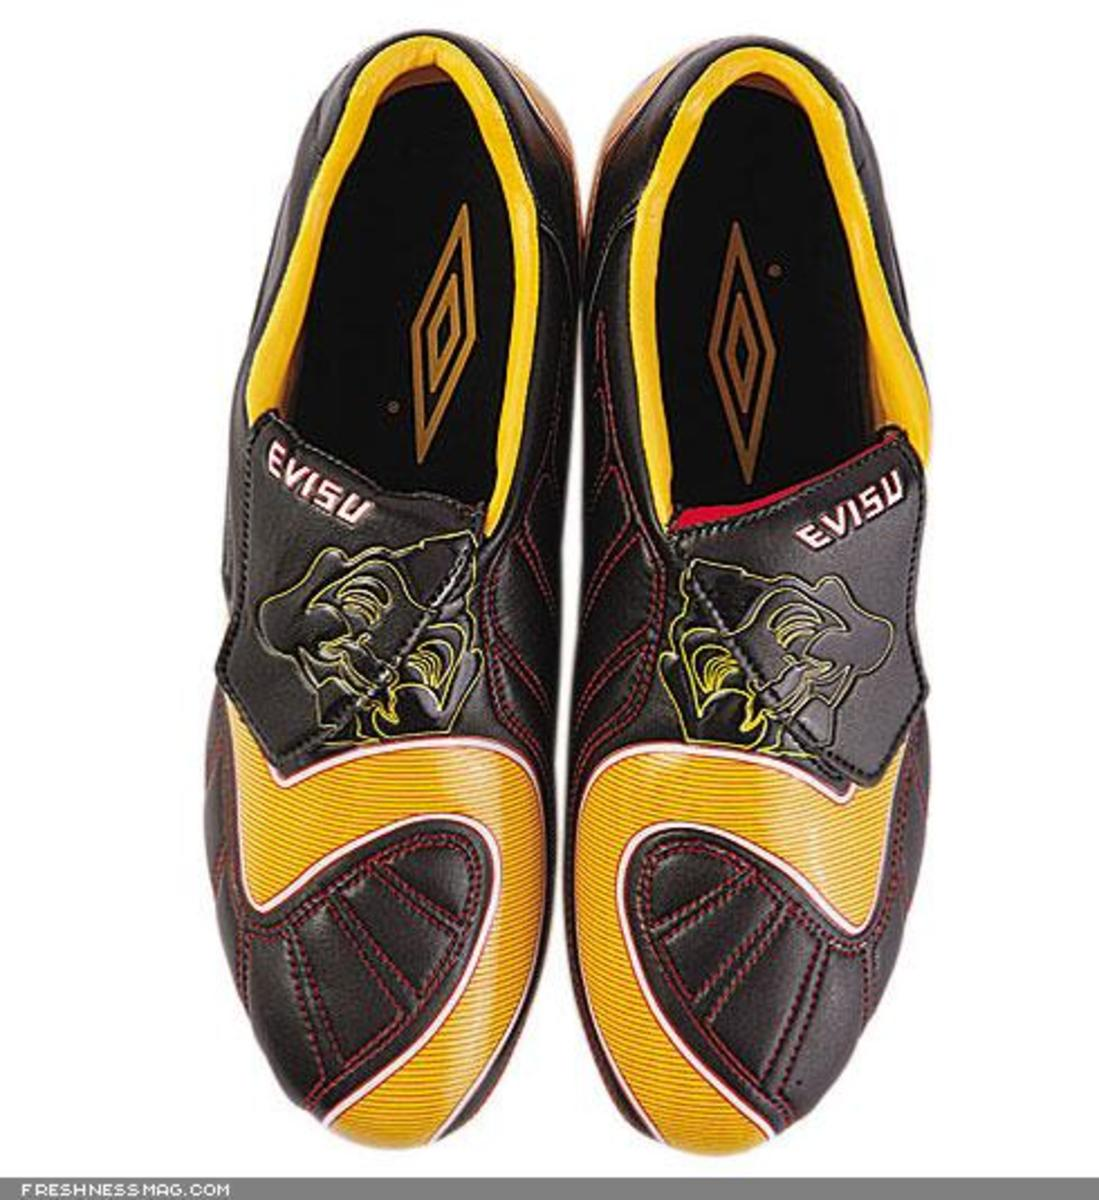 Evisu x Umbro - Soccer Shoes - 1